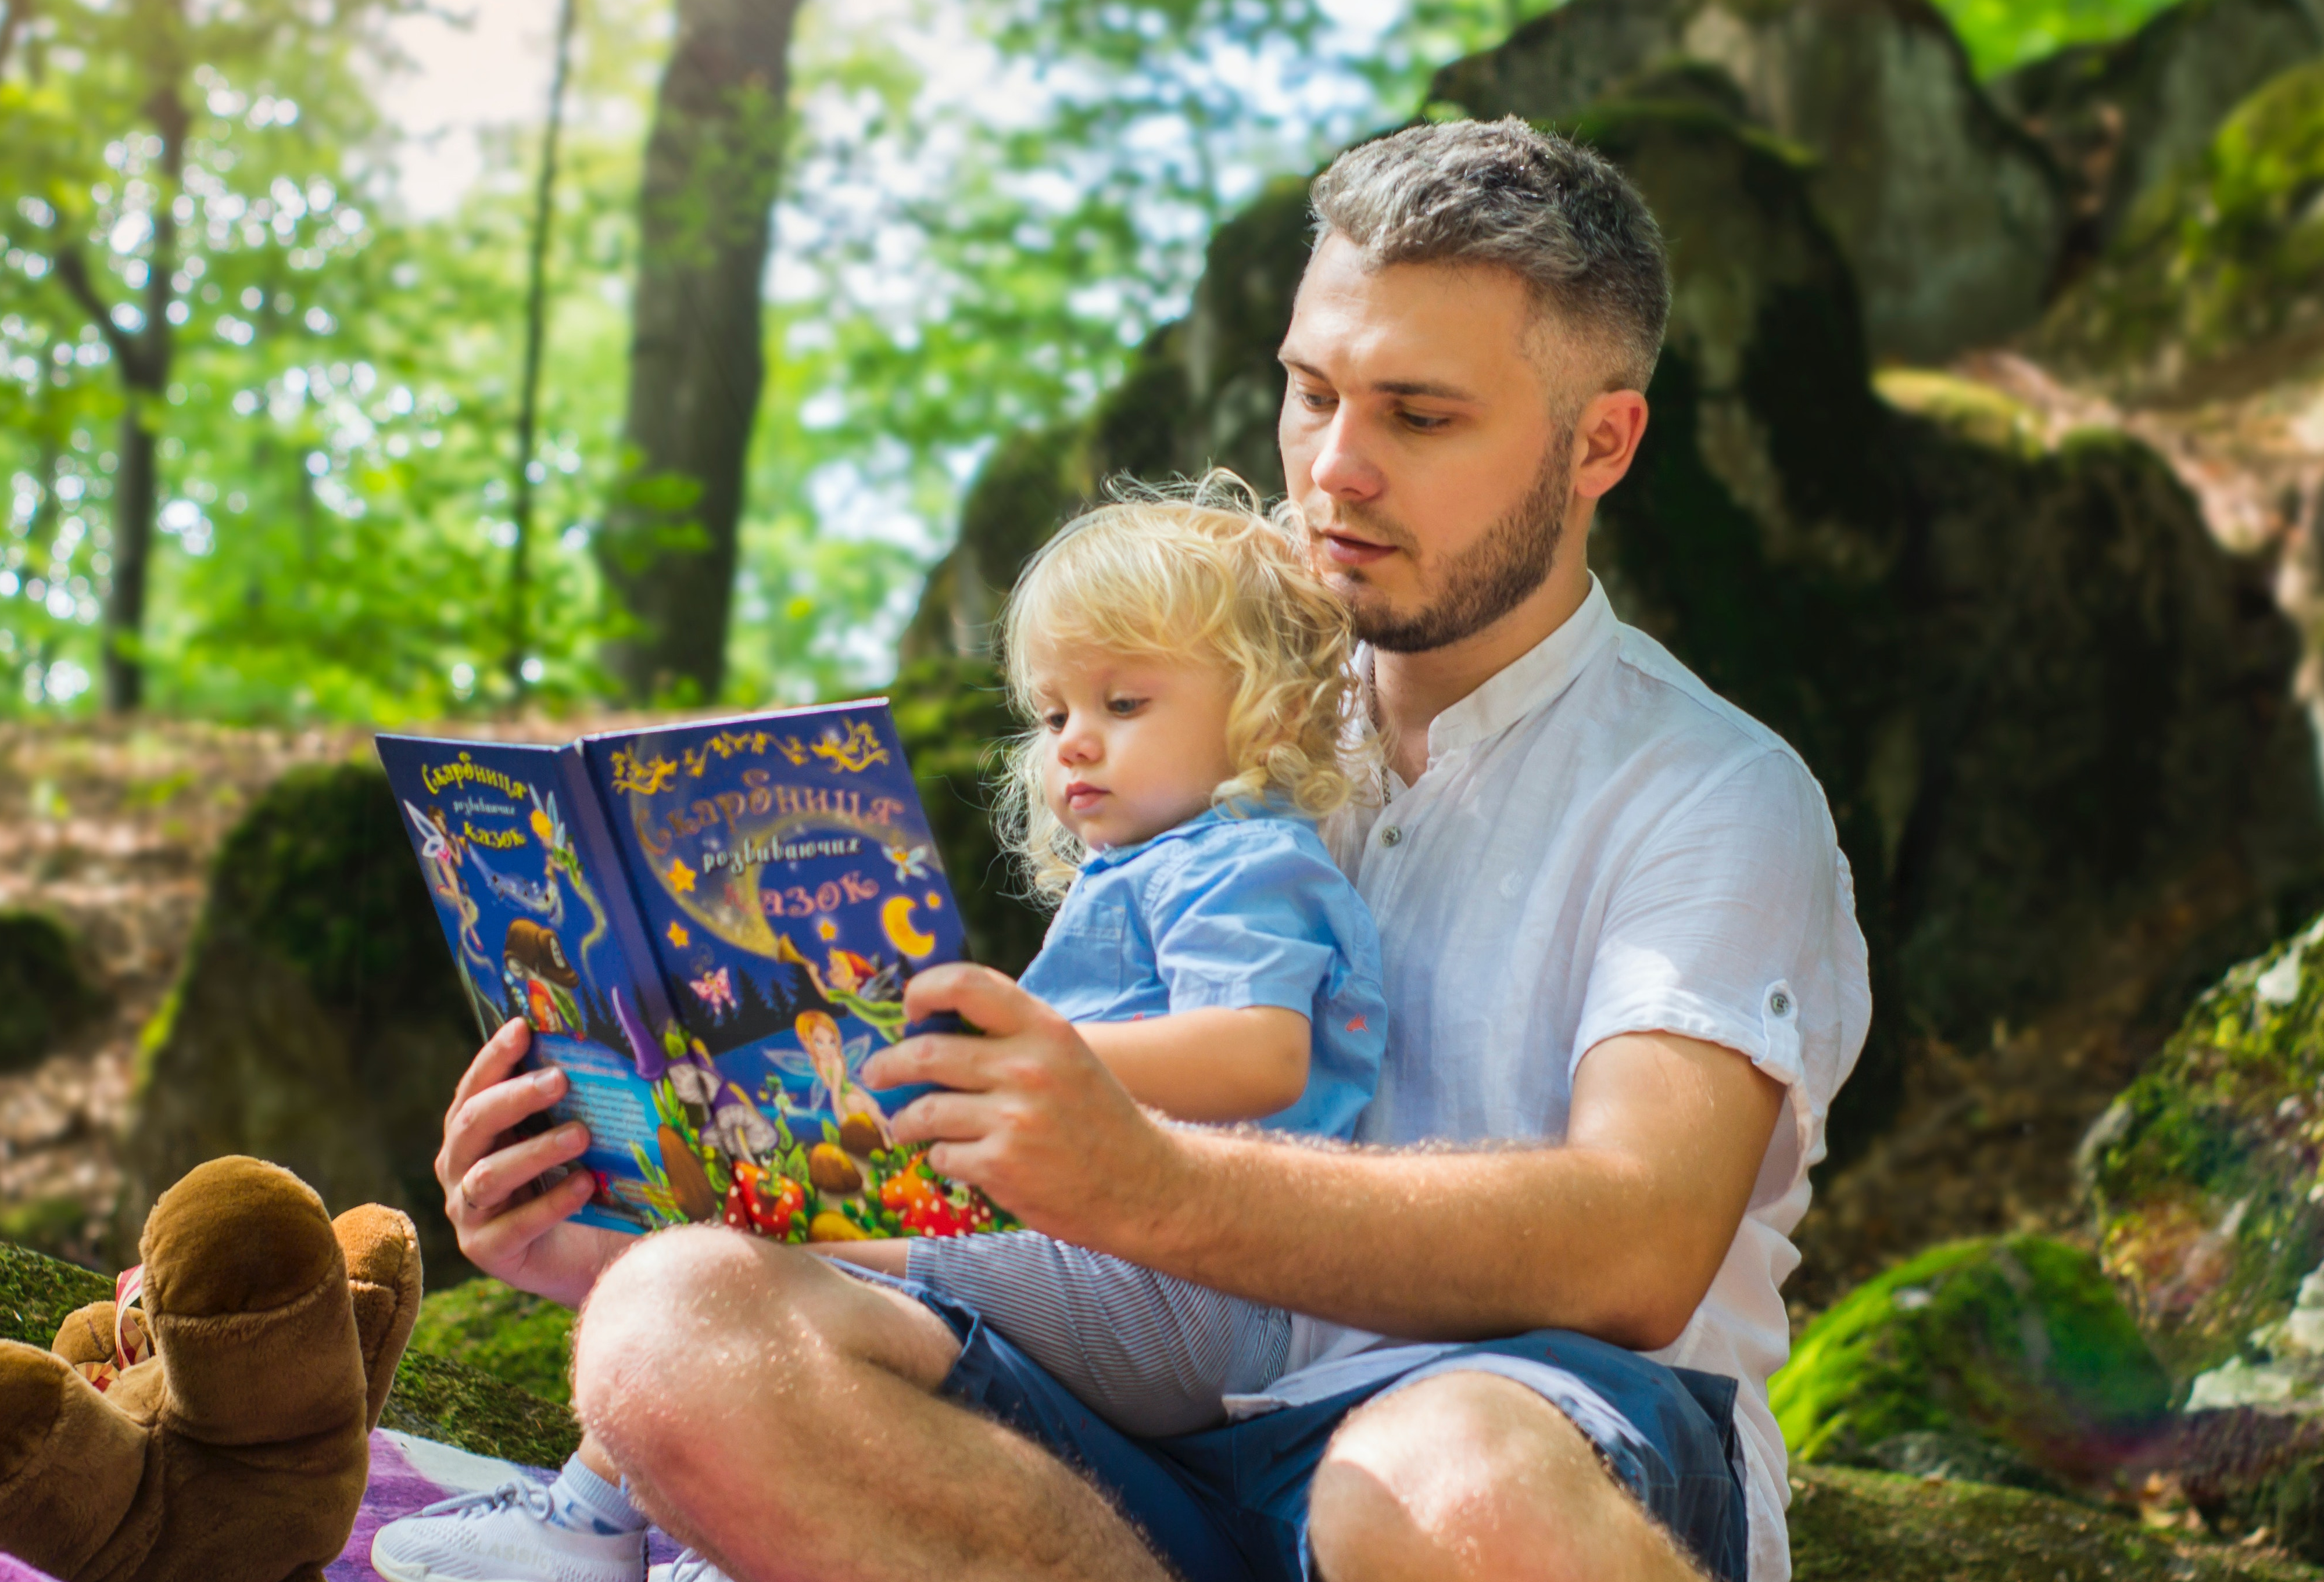 a man reads to a toddler outside in a sunny woodland